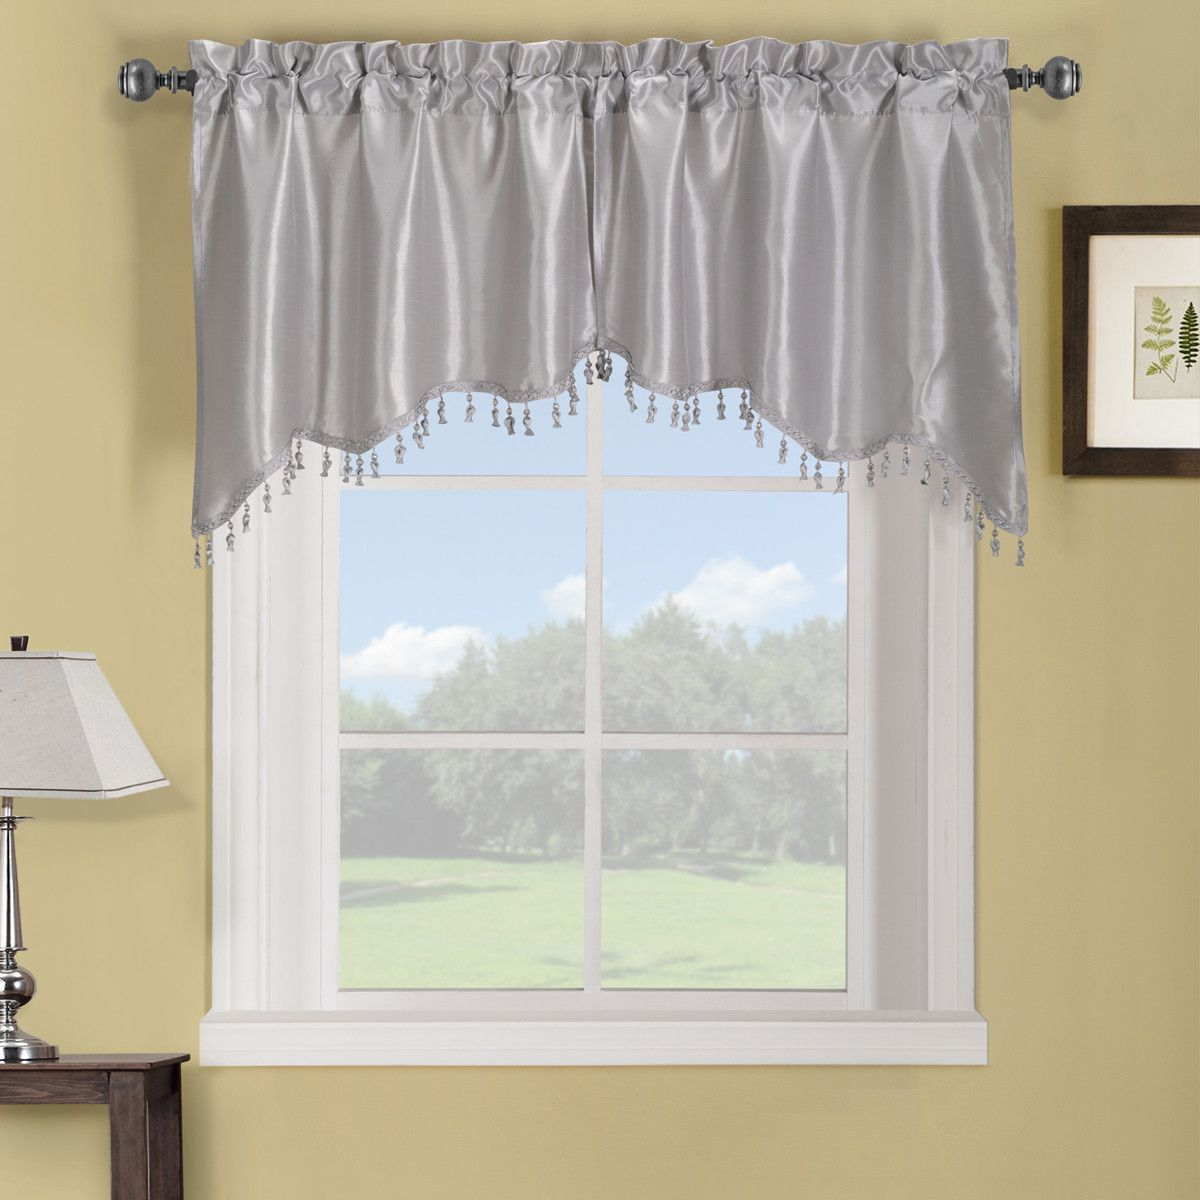 Cheap window coverings  the soho swag valance simplify the casual and contemporary styling